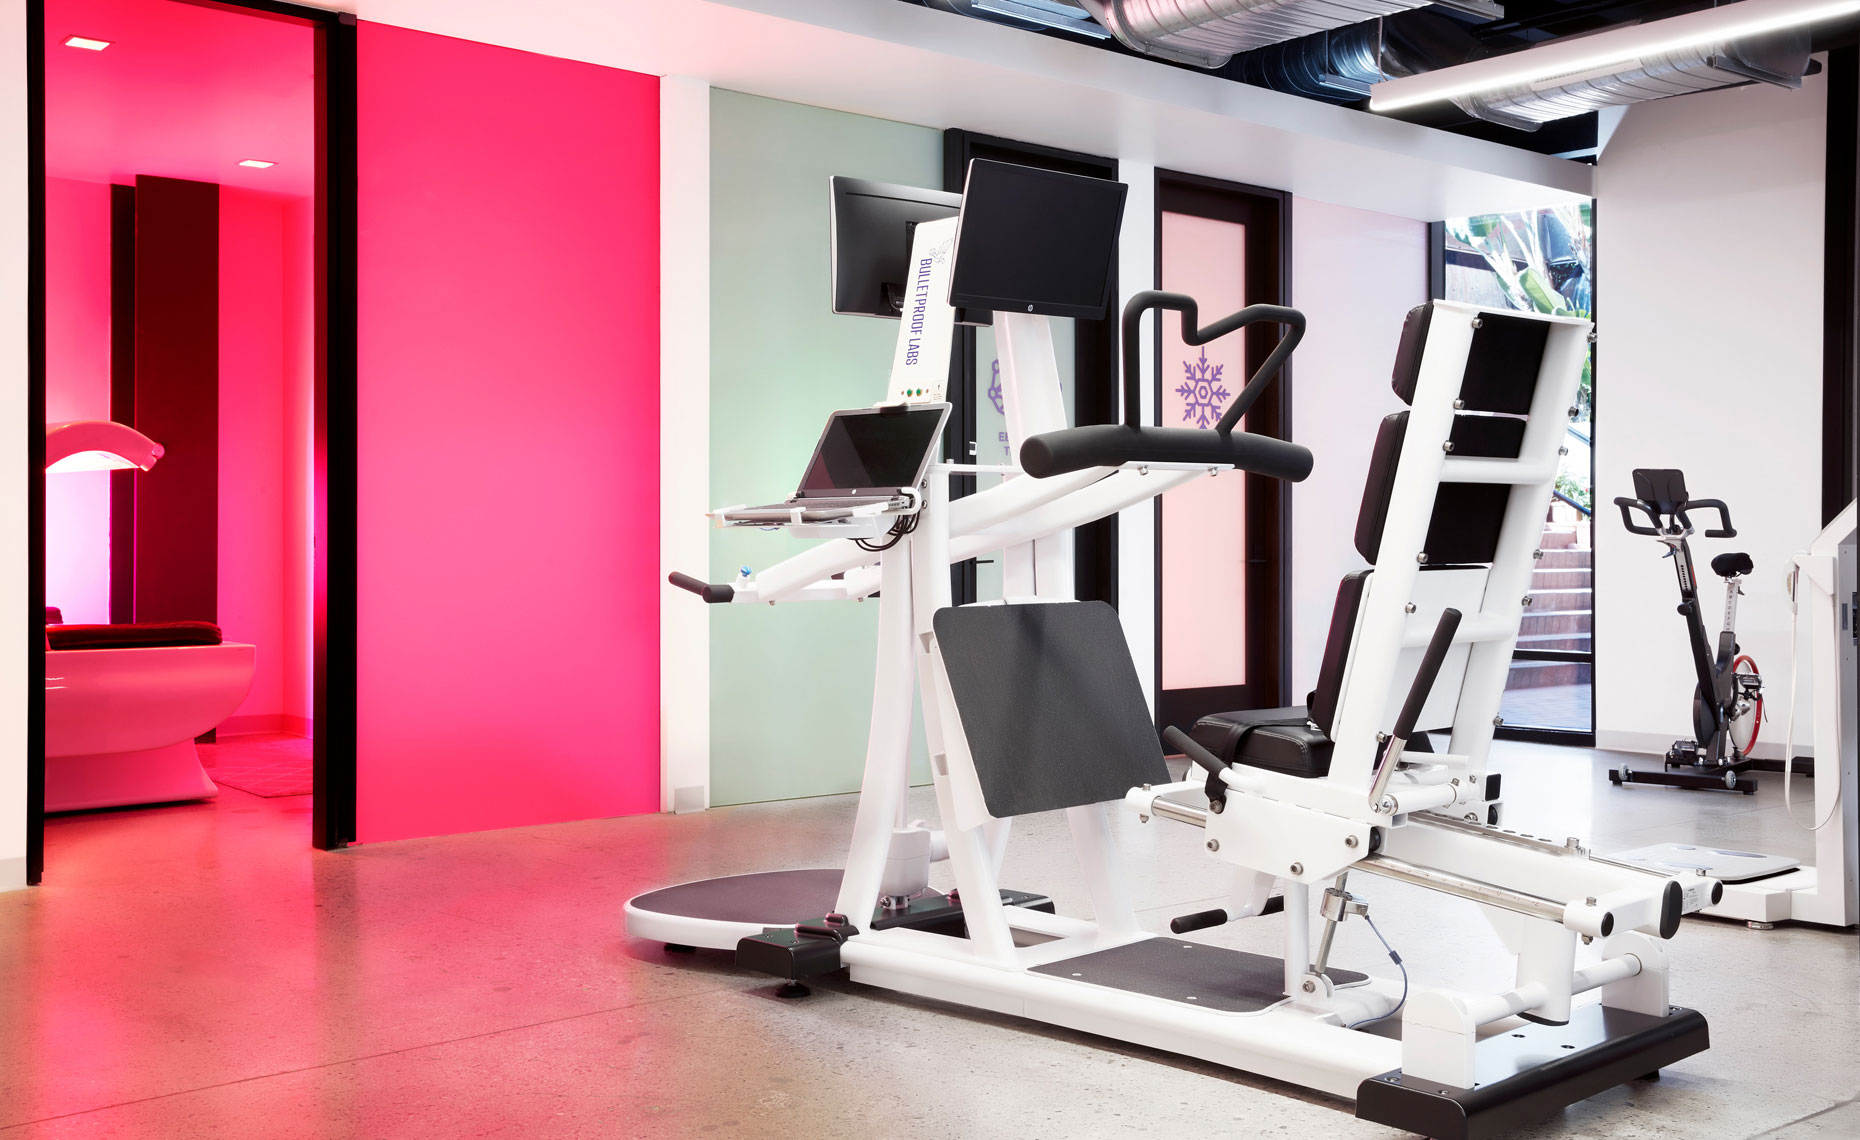 Upgrade_Labs_Santa_Monica_Workout_Room_1